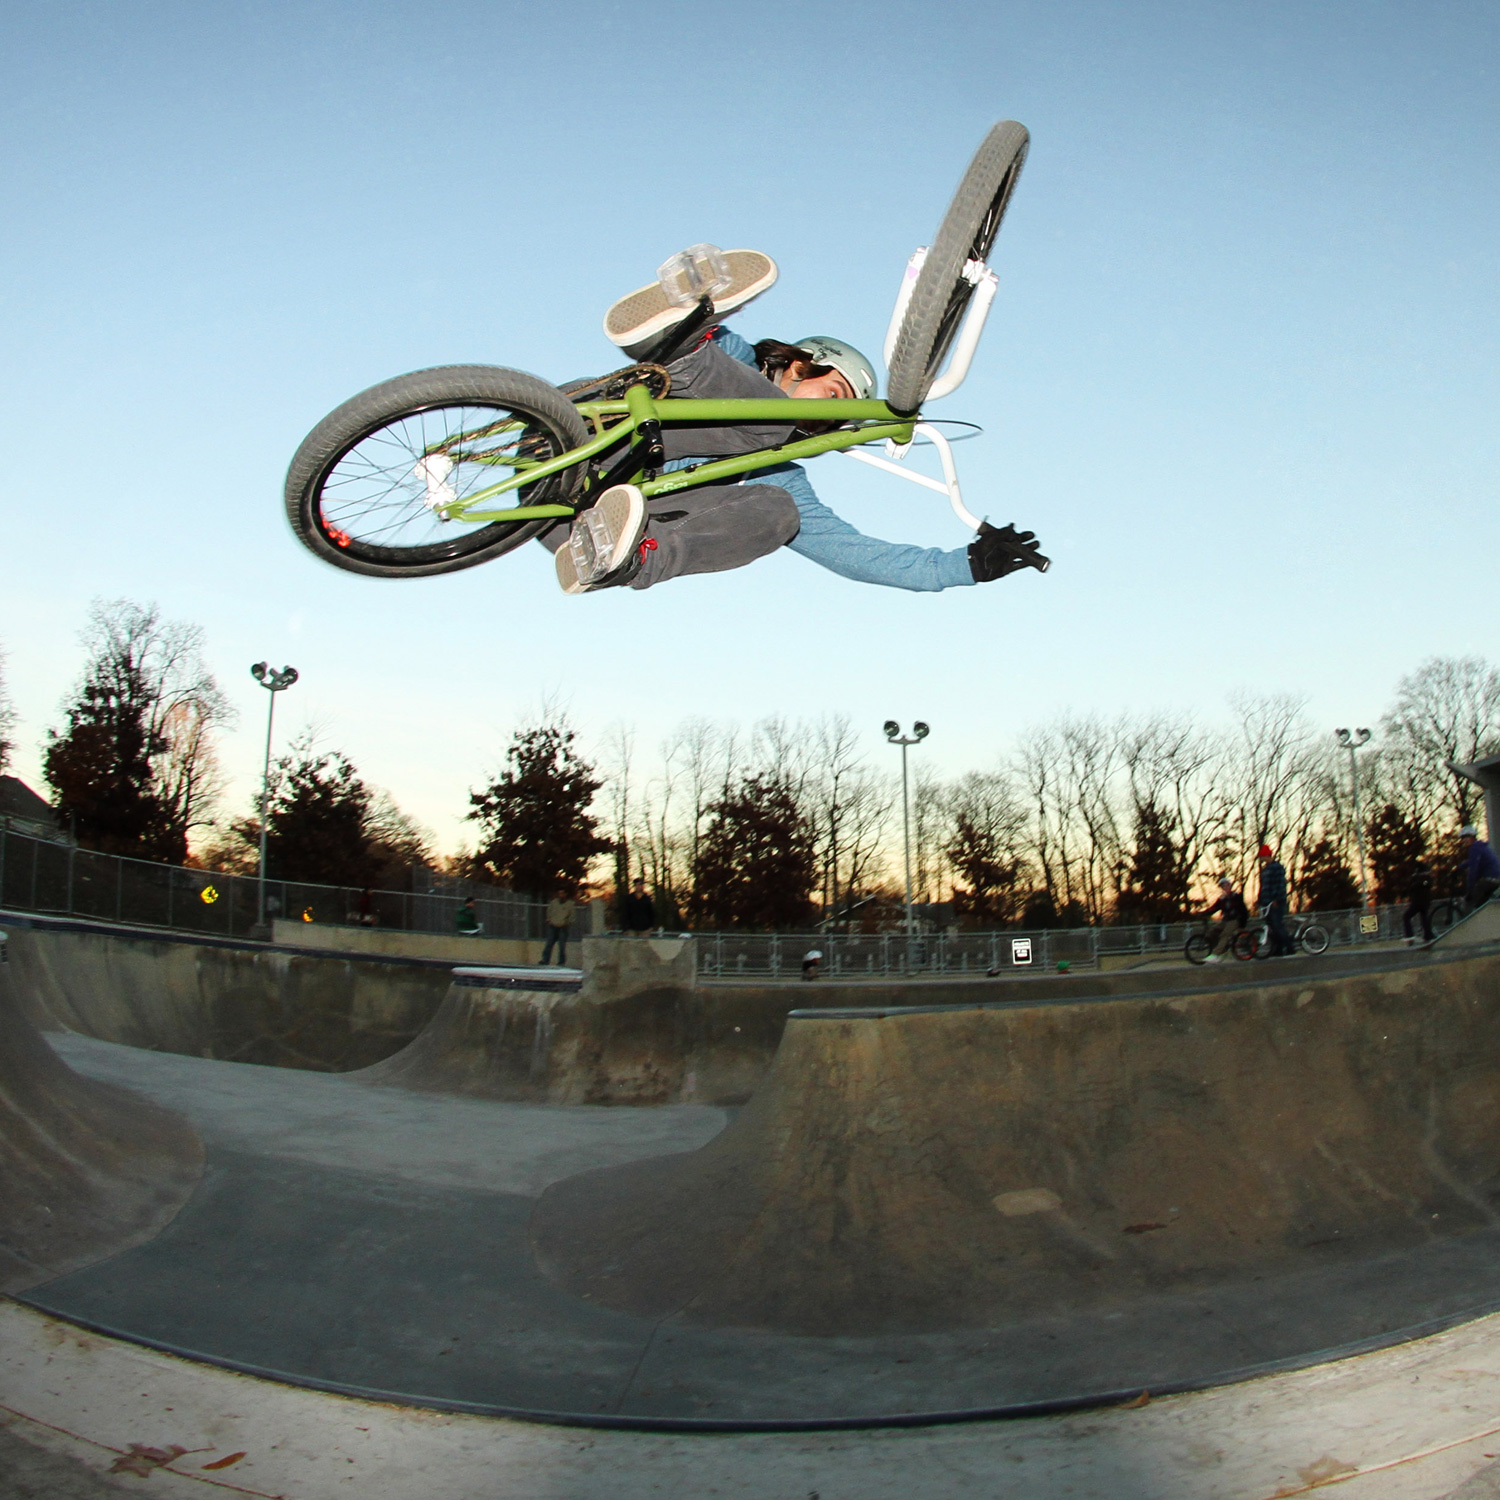 Thad Allender airs the bowl at the Powhatan Skatepark